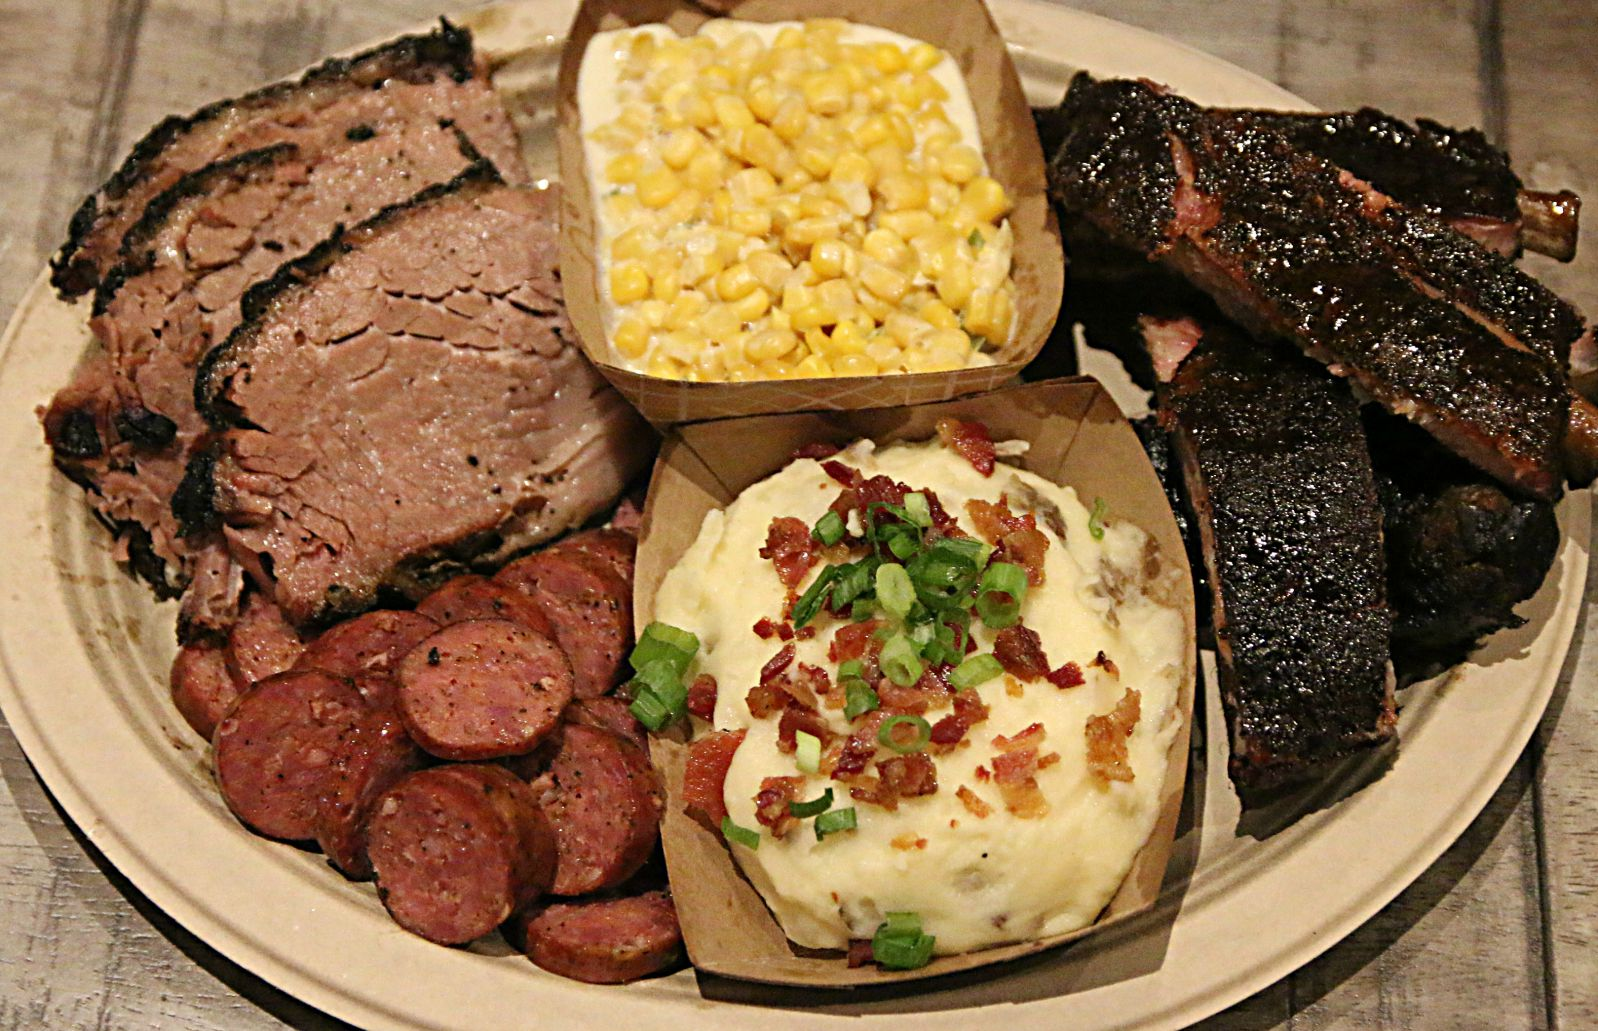 Three meat plate with sausage made in-house, mashed potatoes, and creamed corn